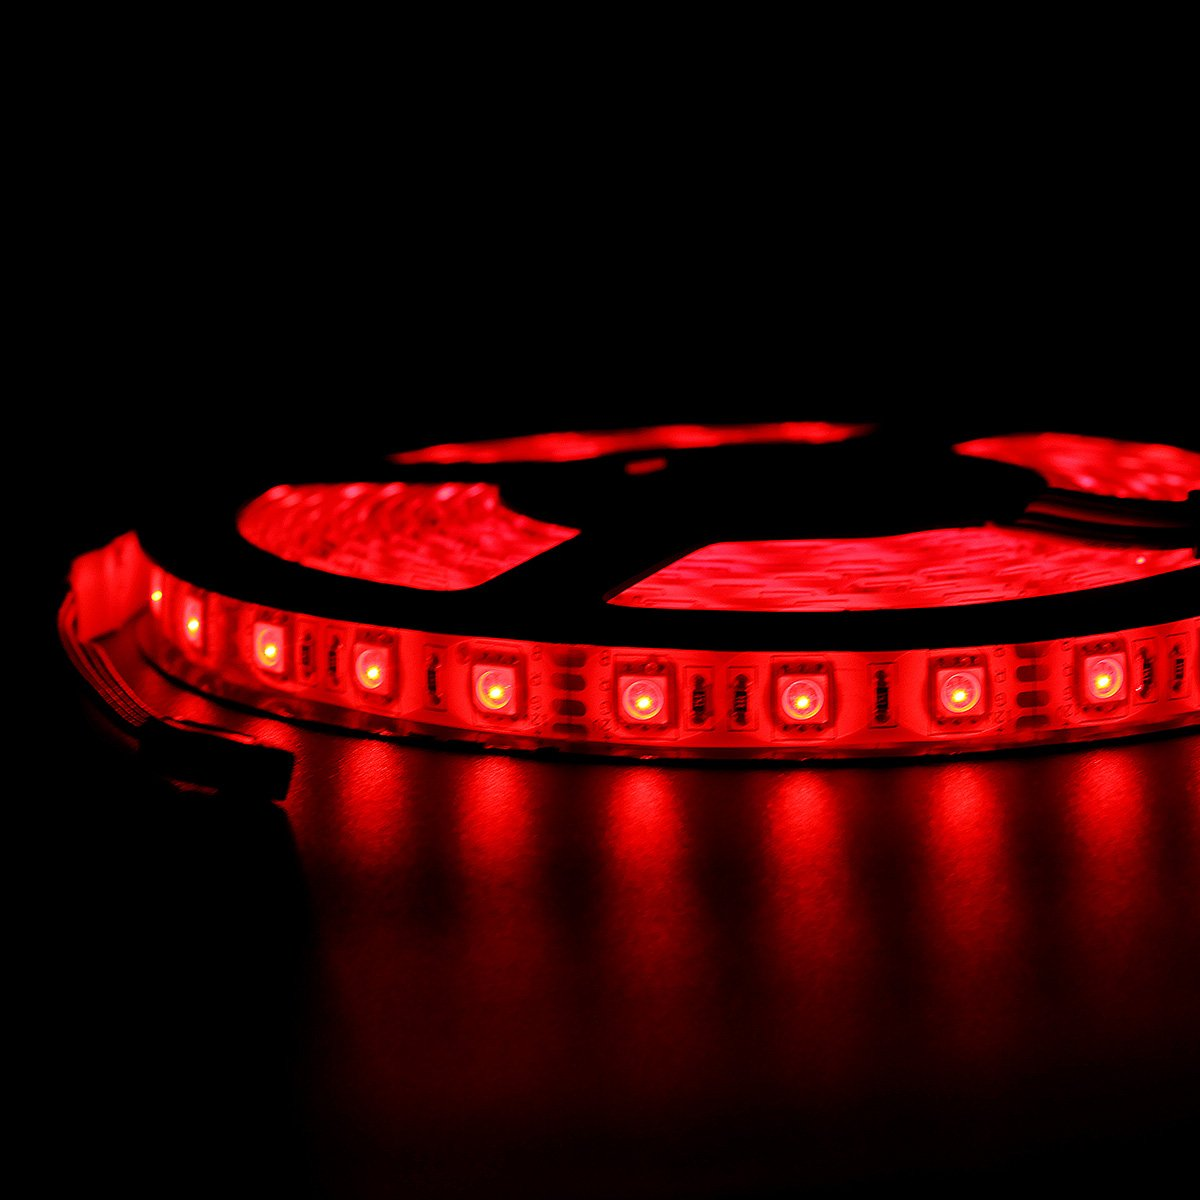 Supernight tm 164ft smd 5050 waterproof 300leds rgb flexible supernight tm 164ft smd 5050 waterproof 300leds rgb flexible led strip light lamp kit 44key ir remote controller amazon patio lawn garden mozeypictures Image collections